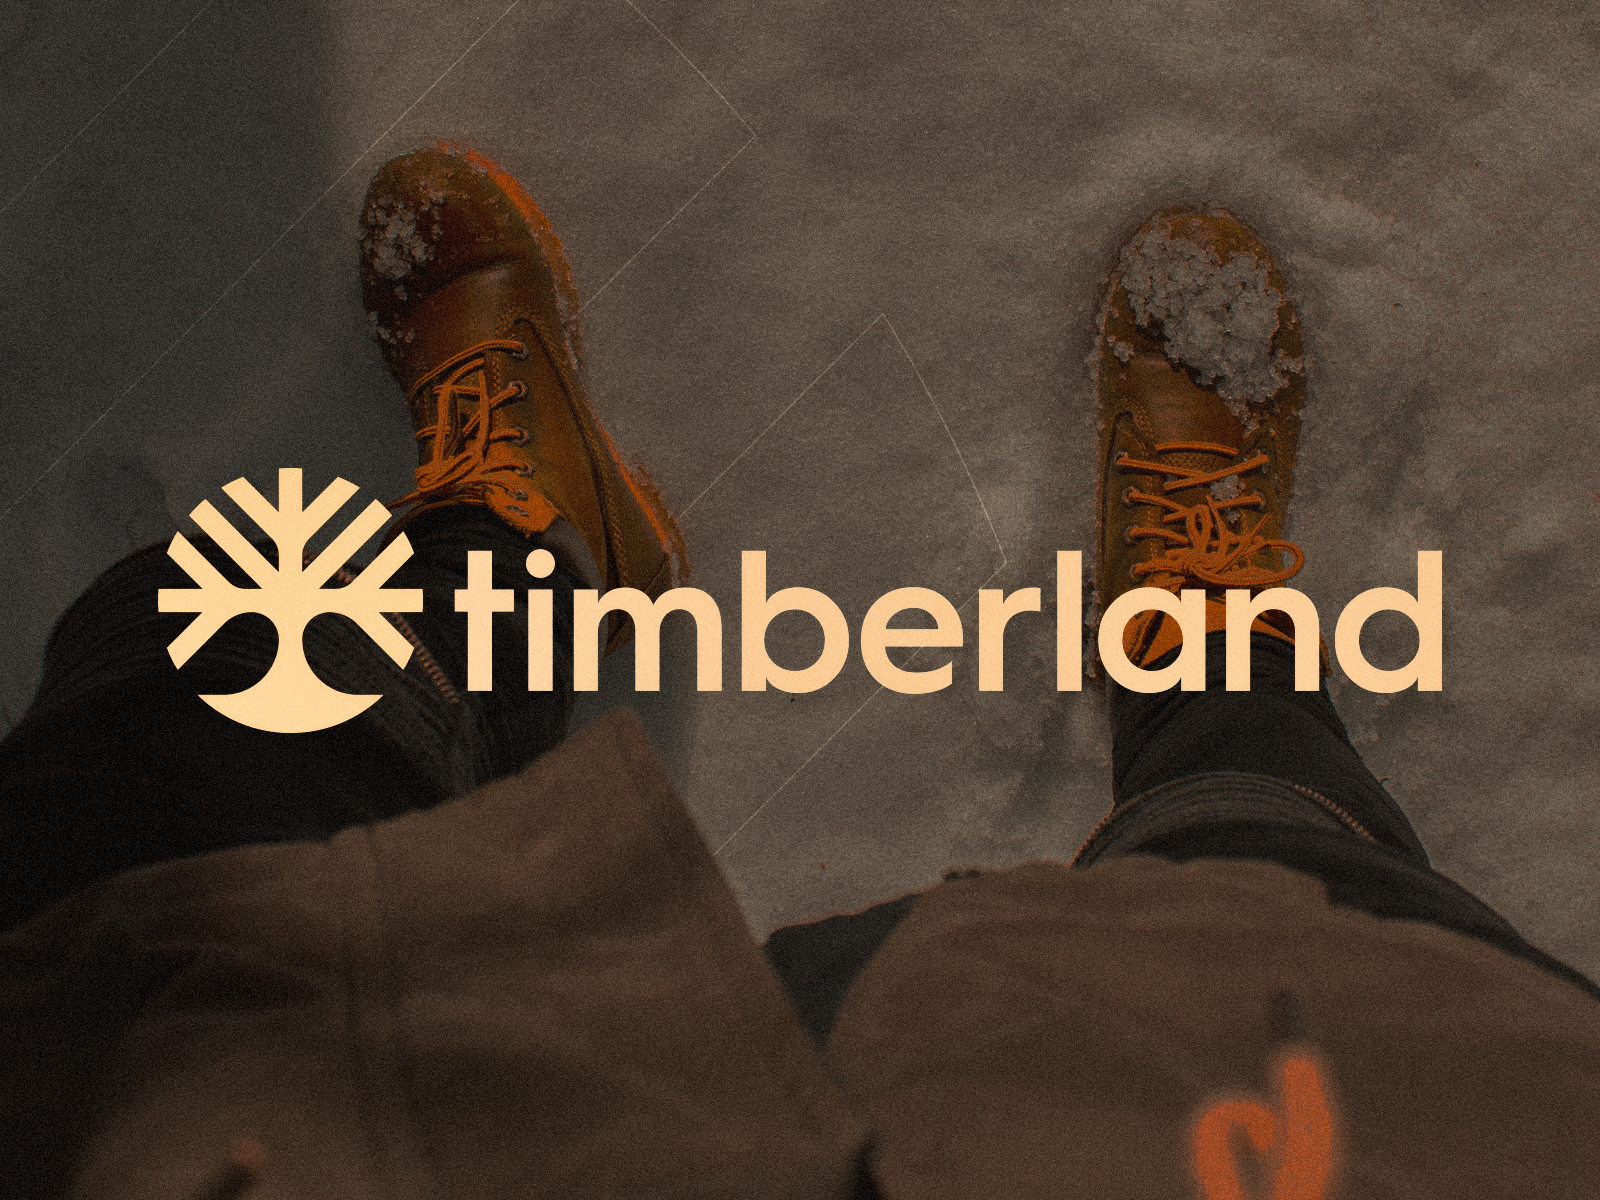 Timberland Redesign Concept by Second Eight